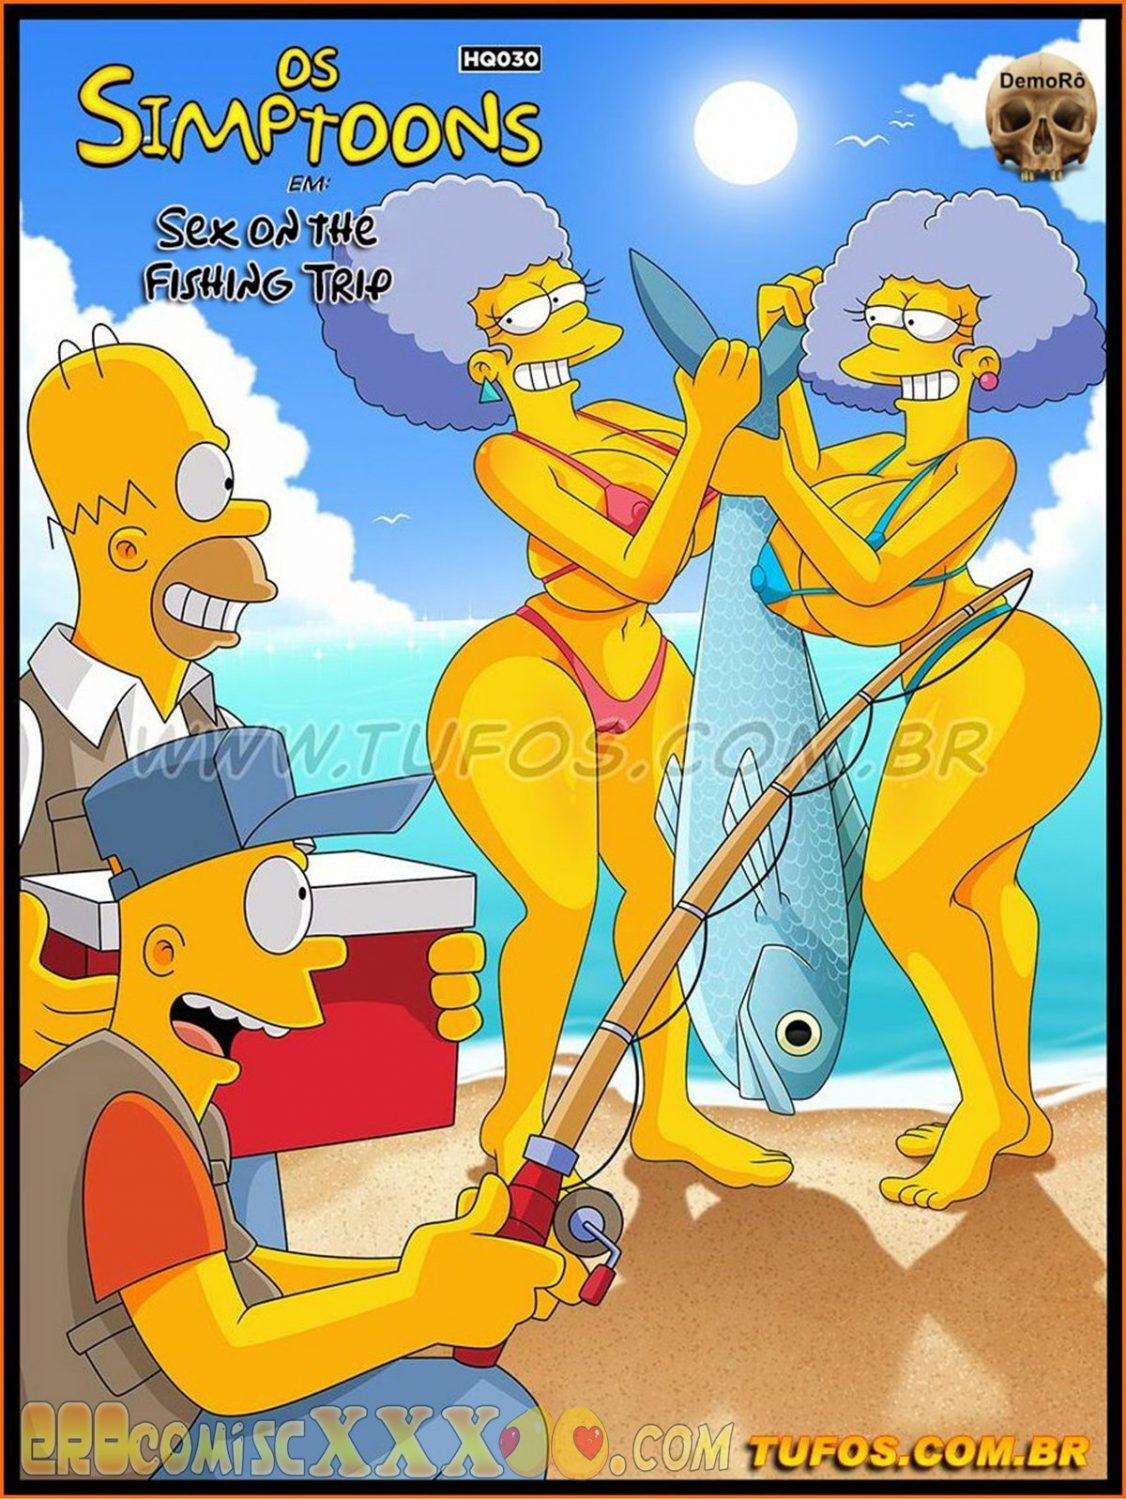 The Simpsons 30 Sex on the Fishing Trip 1 1126x1500 - The Simpsons 30- Sex On The Fishing Trip.